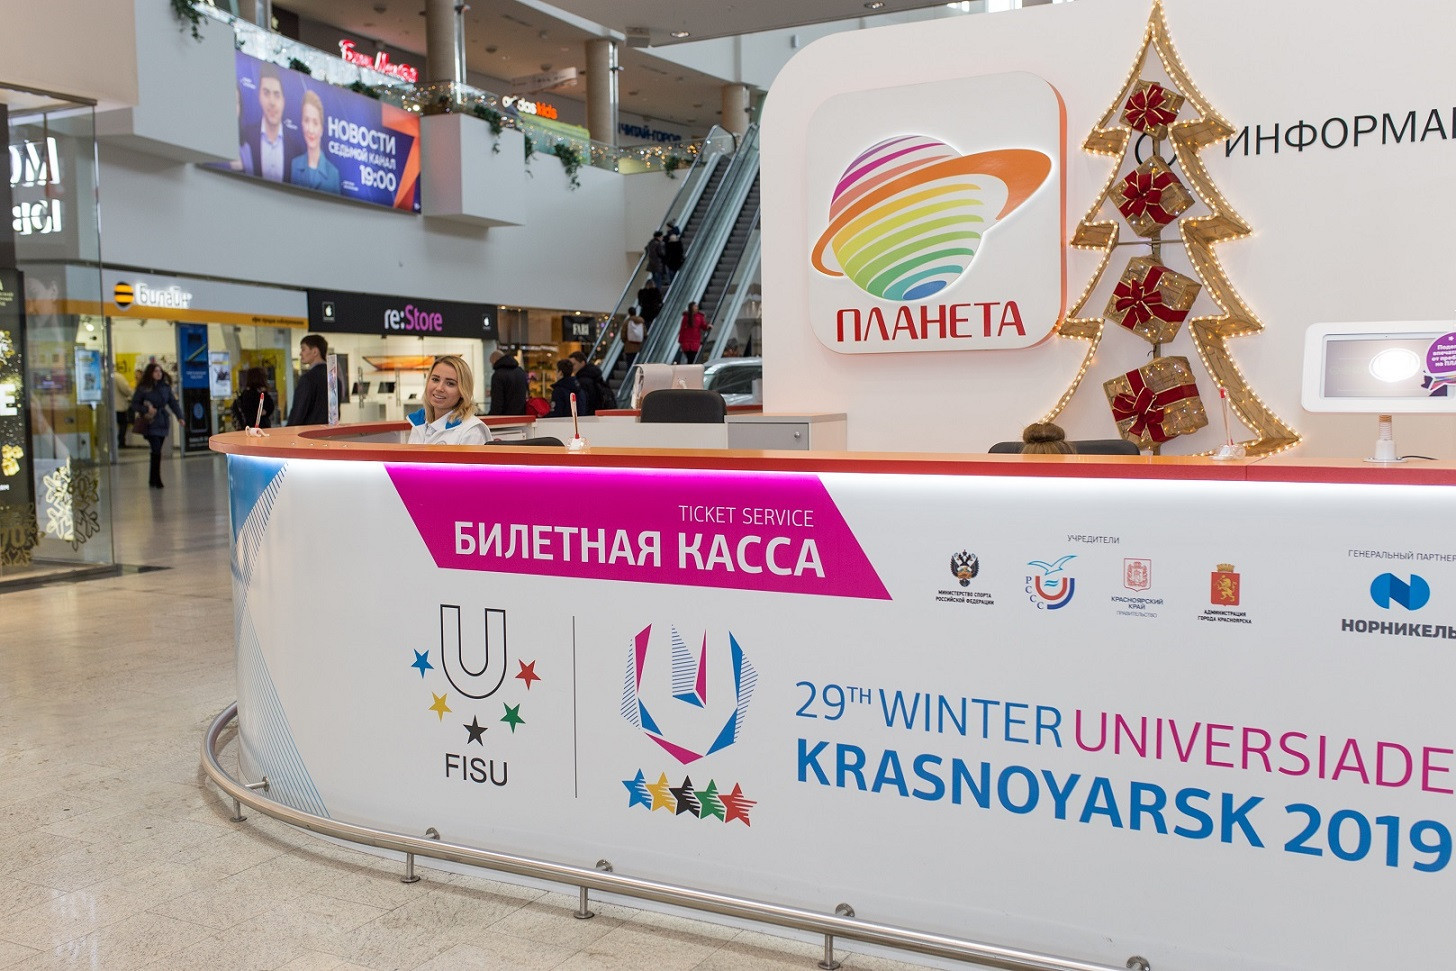 Tickets are still available to buy from the Winter Universiade website and ticket offices from across Krasnoyarsk ©Krasnoyarsk 2019